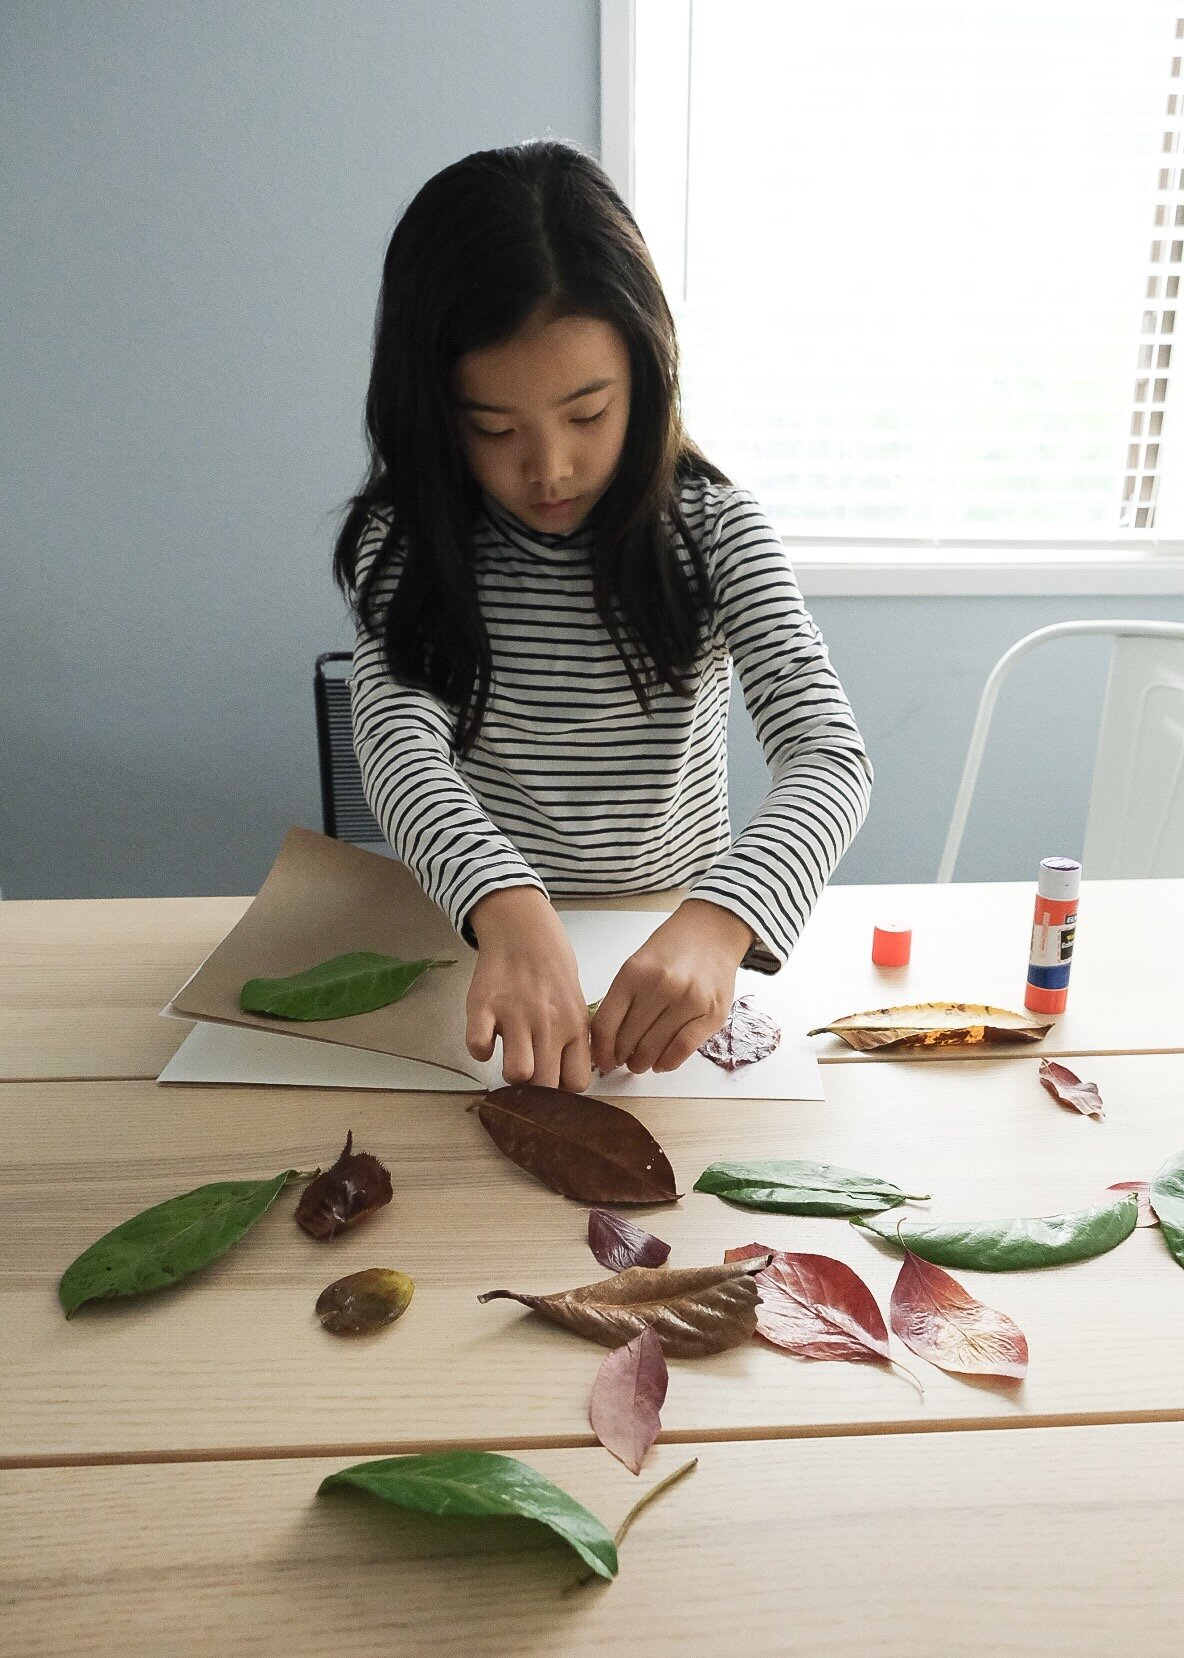 When the mod podge was dry, the girls arranged and glued the leaves in the book. For the book, we mixed heavyweight watercolor paper + brown kraft paper, folded them in half, and hand sewed them together along the folded line.